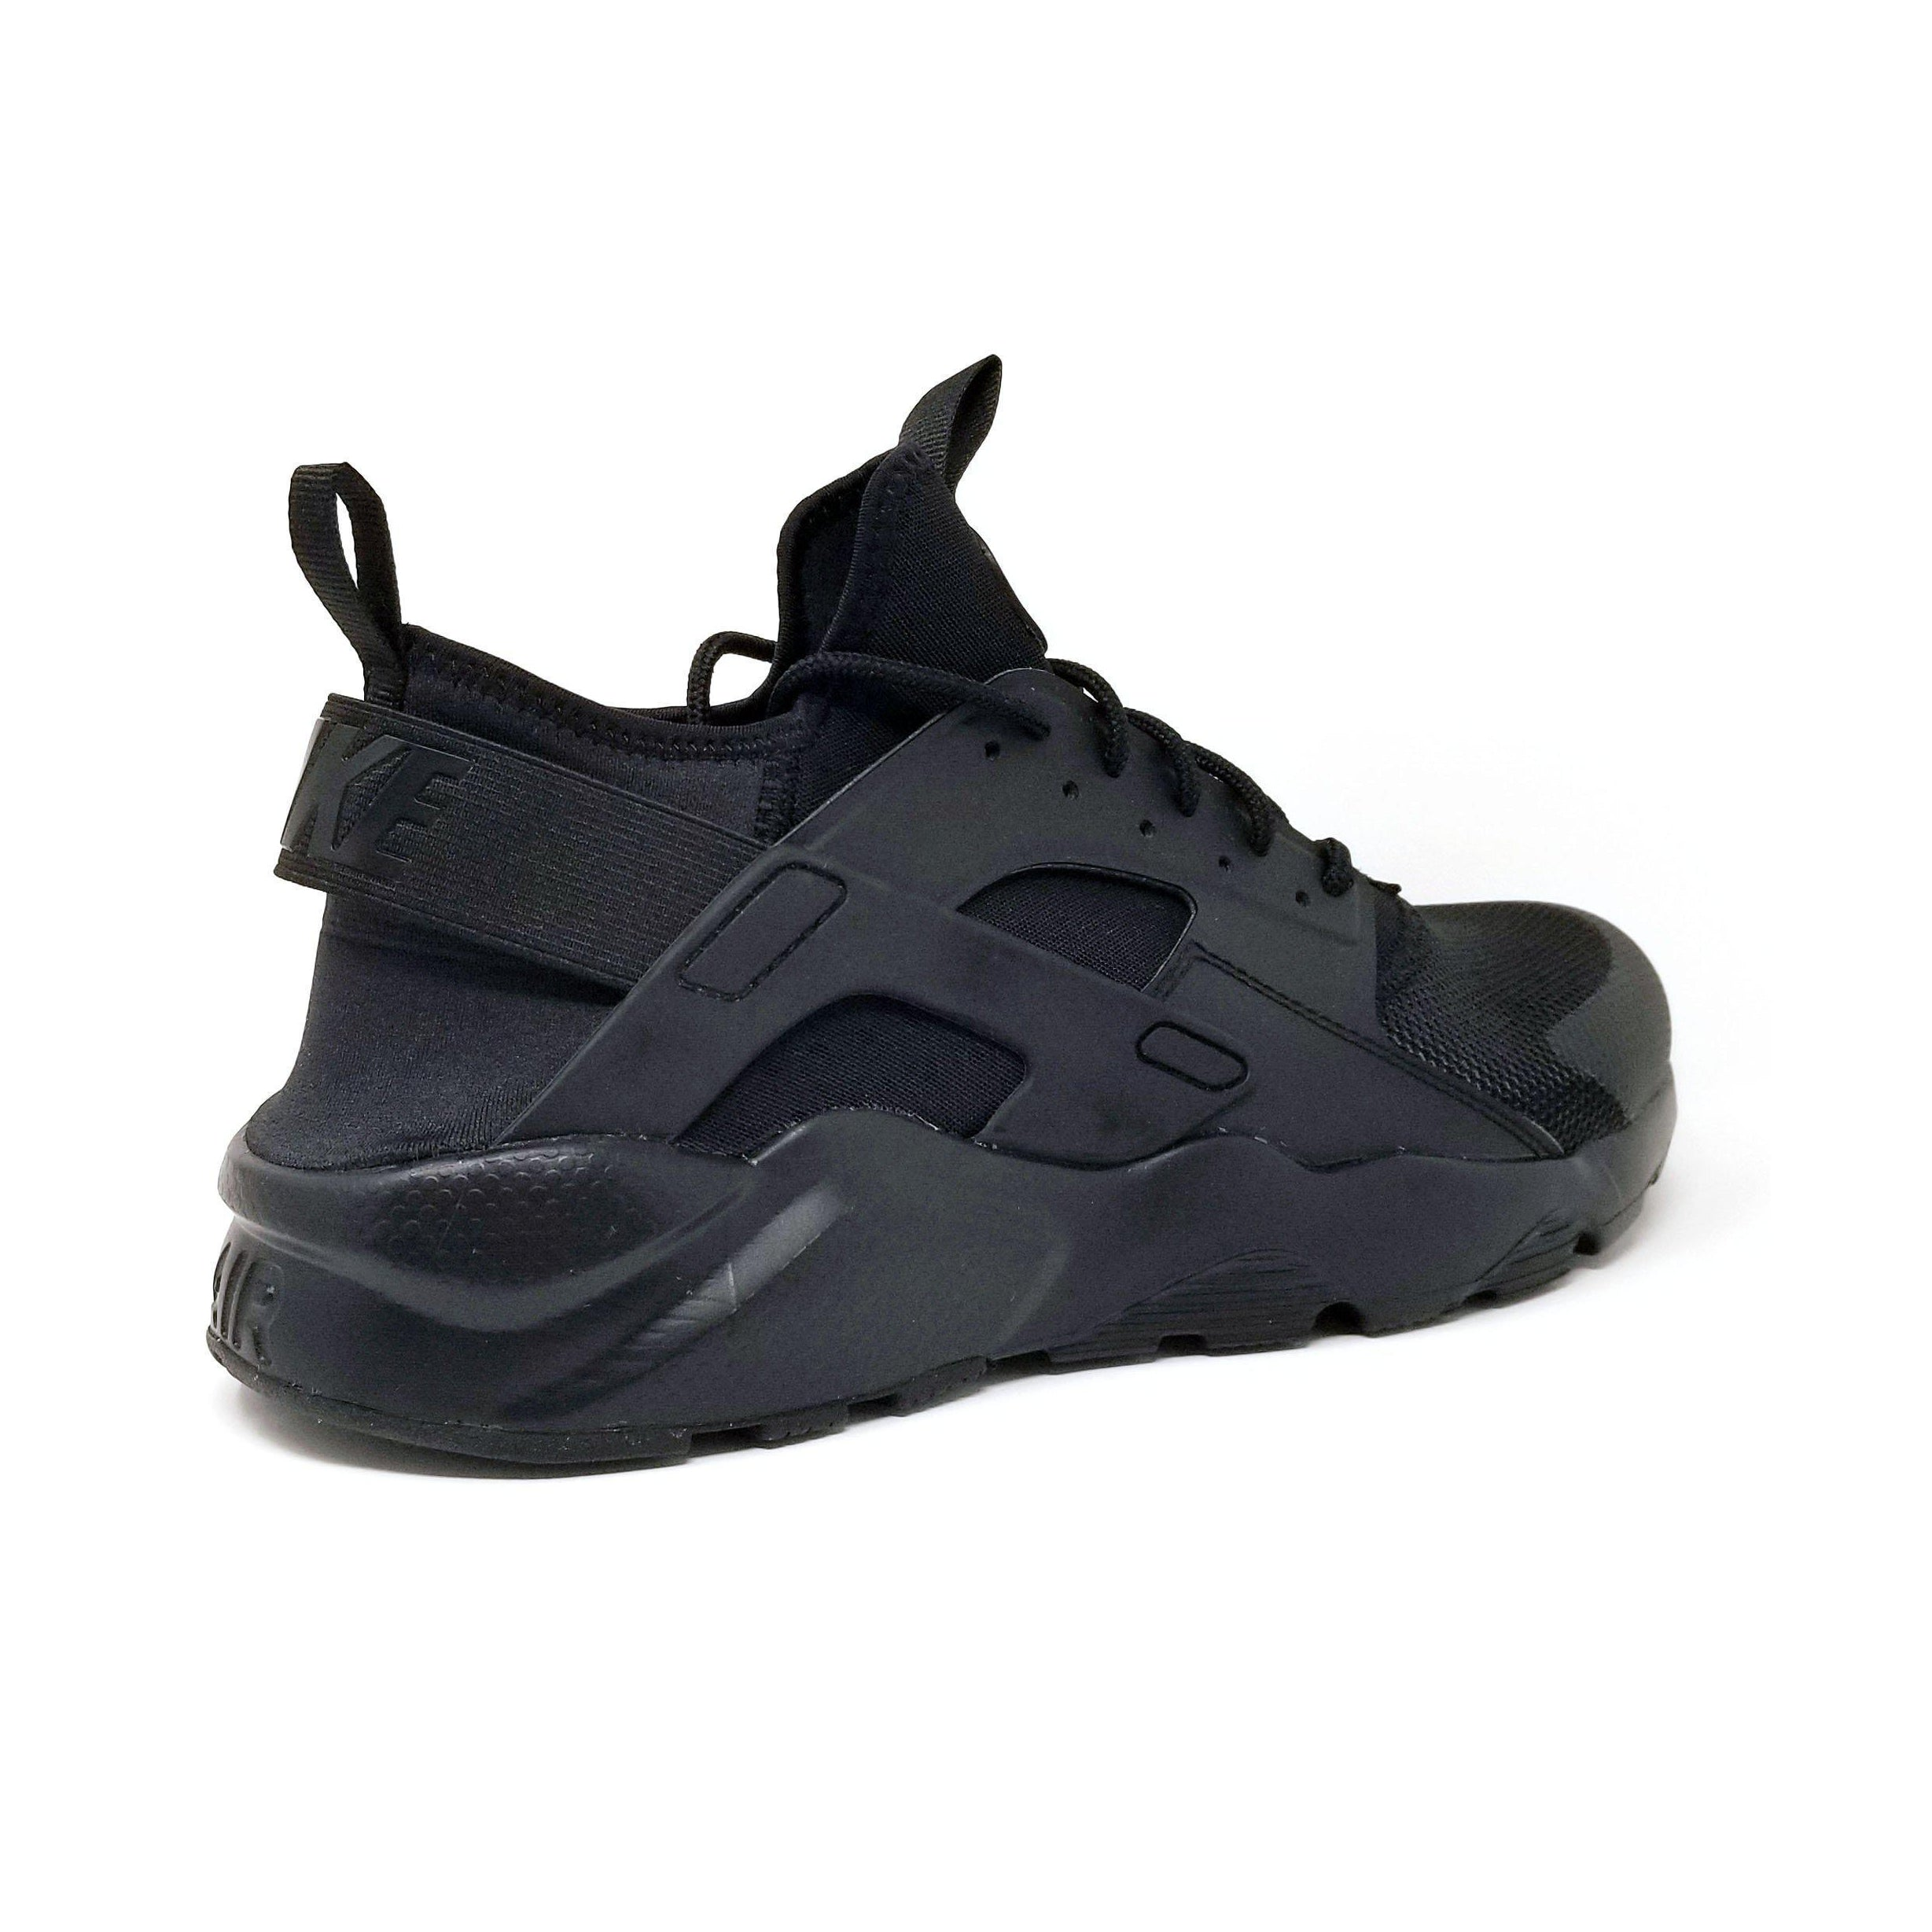 on sale 9b4a5 5cf12 Nike Air Huarache Run Ultra